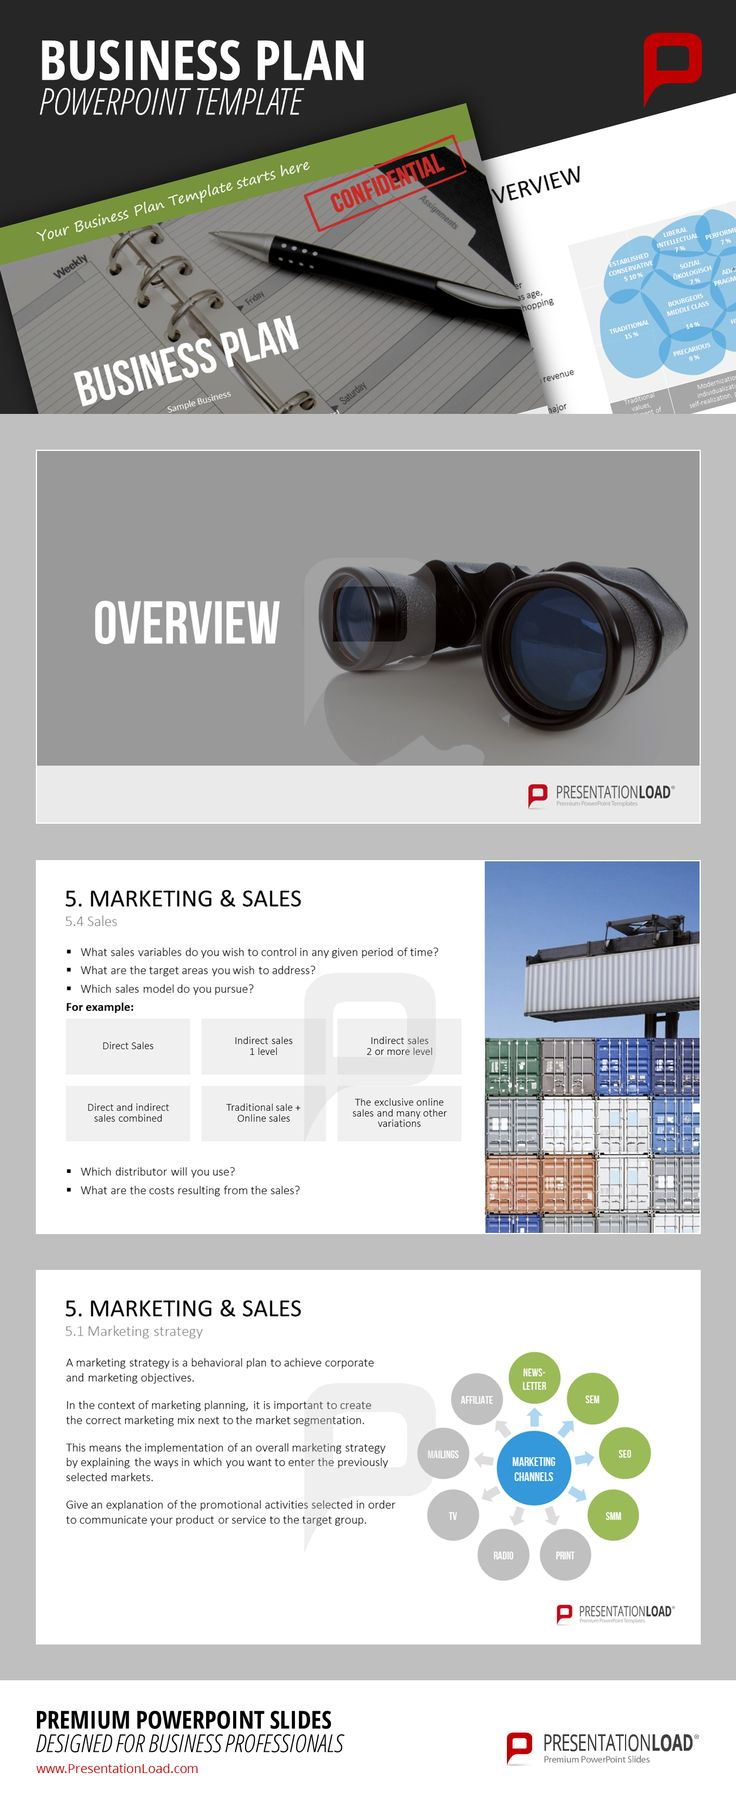 72 best BUSINESS PLANNING // POWERPOINT TEMPLATES images on ...